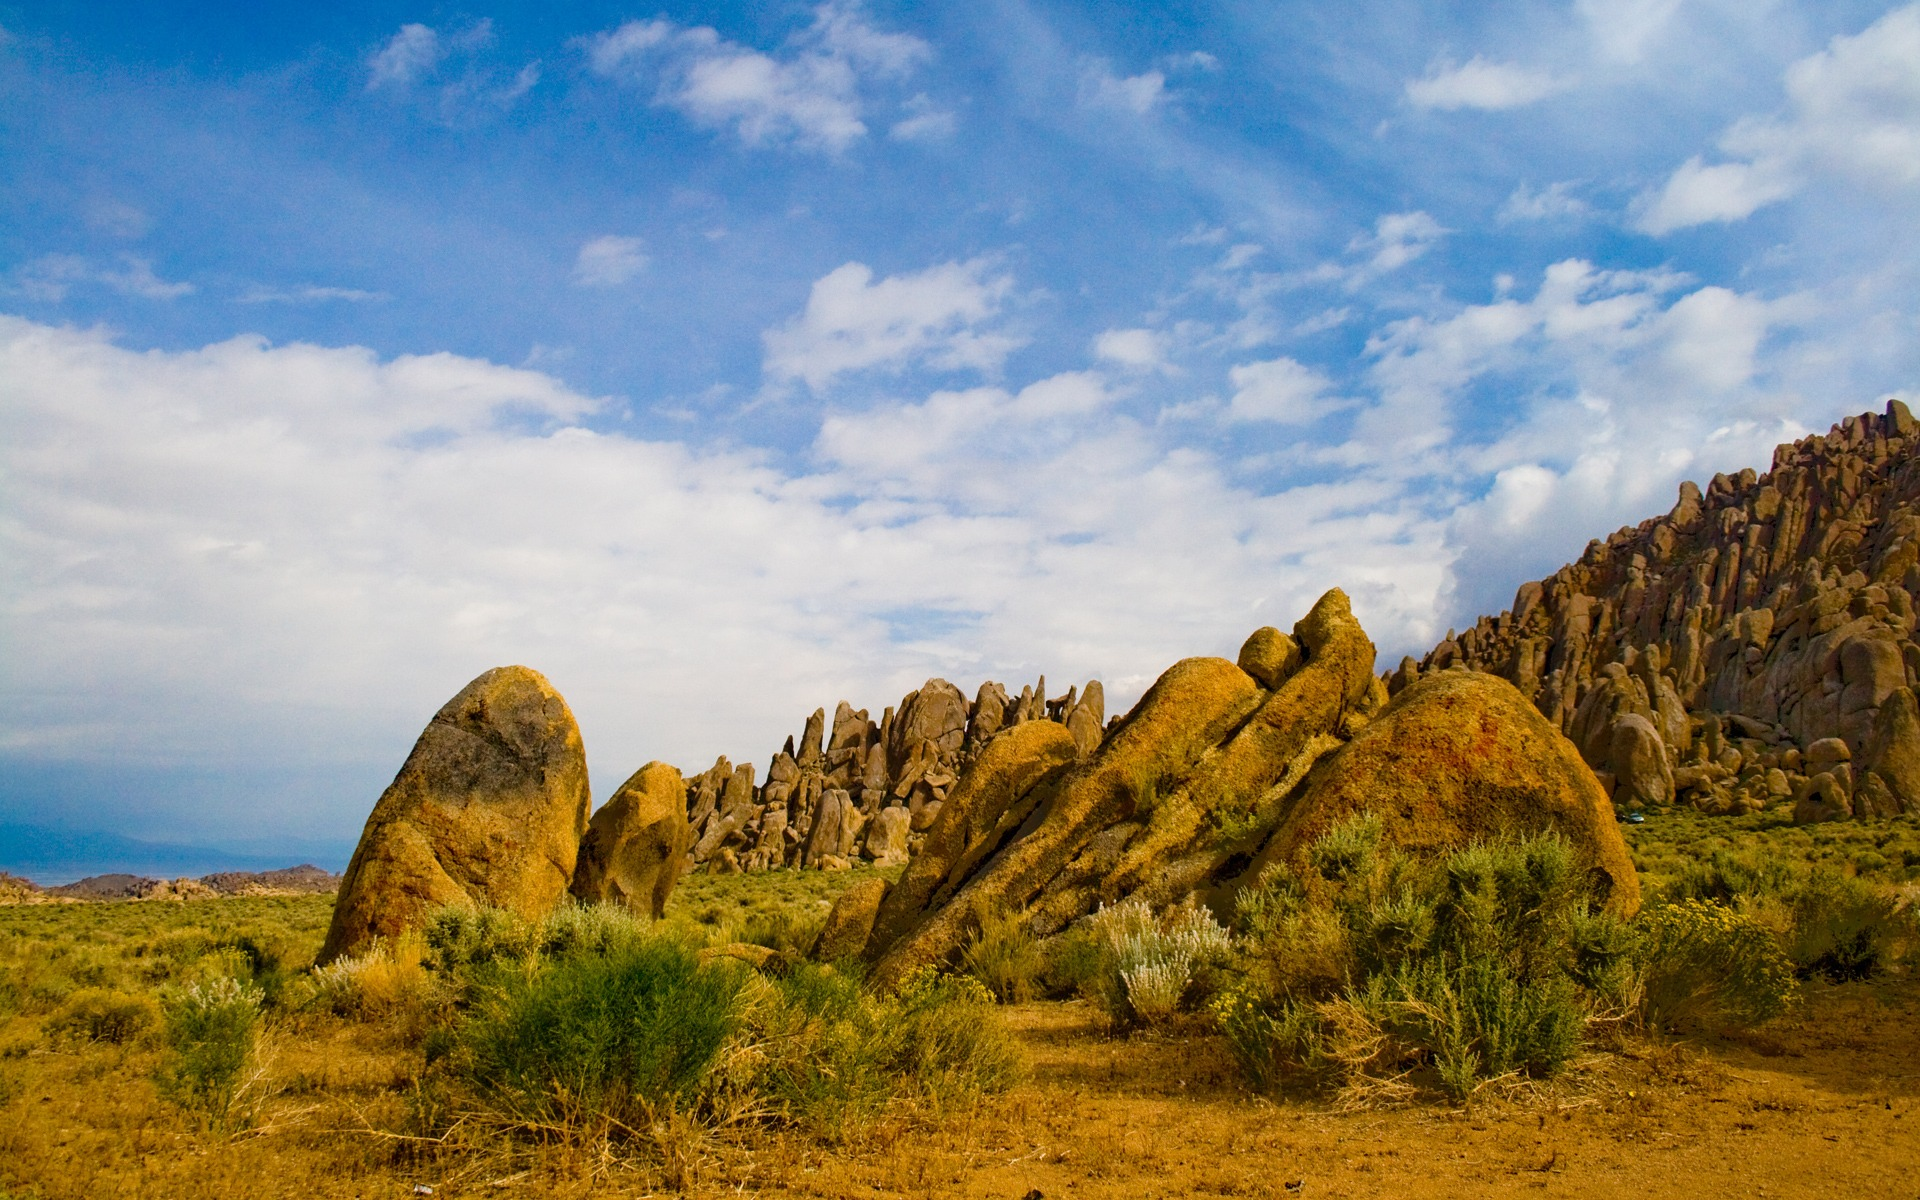 alabama hills wallpaper landscape nature wallpapers in jpg format